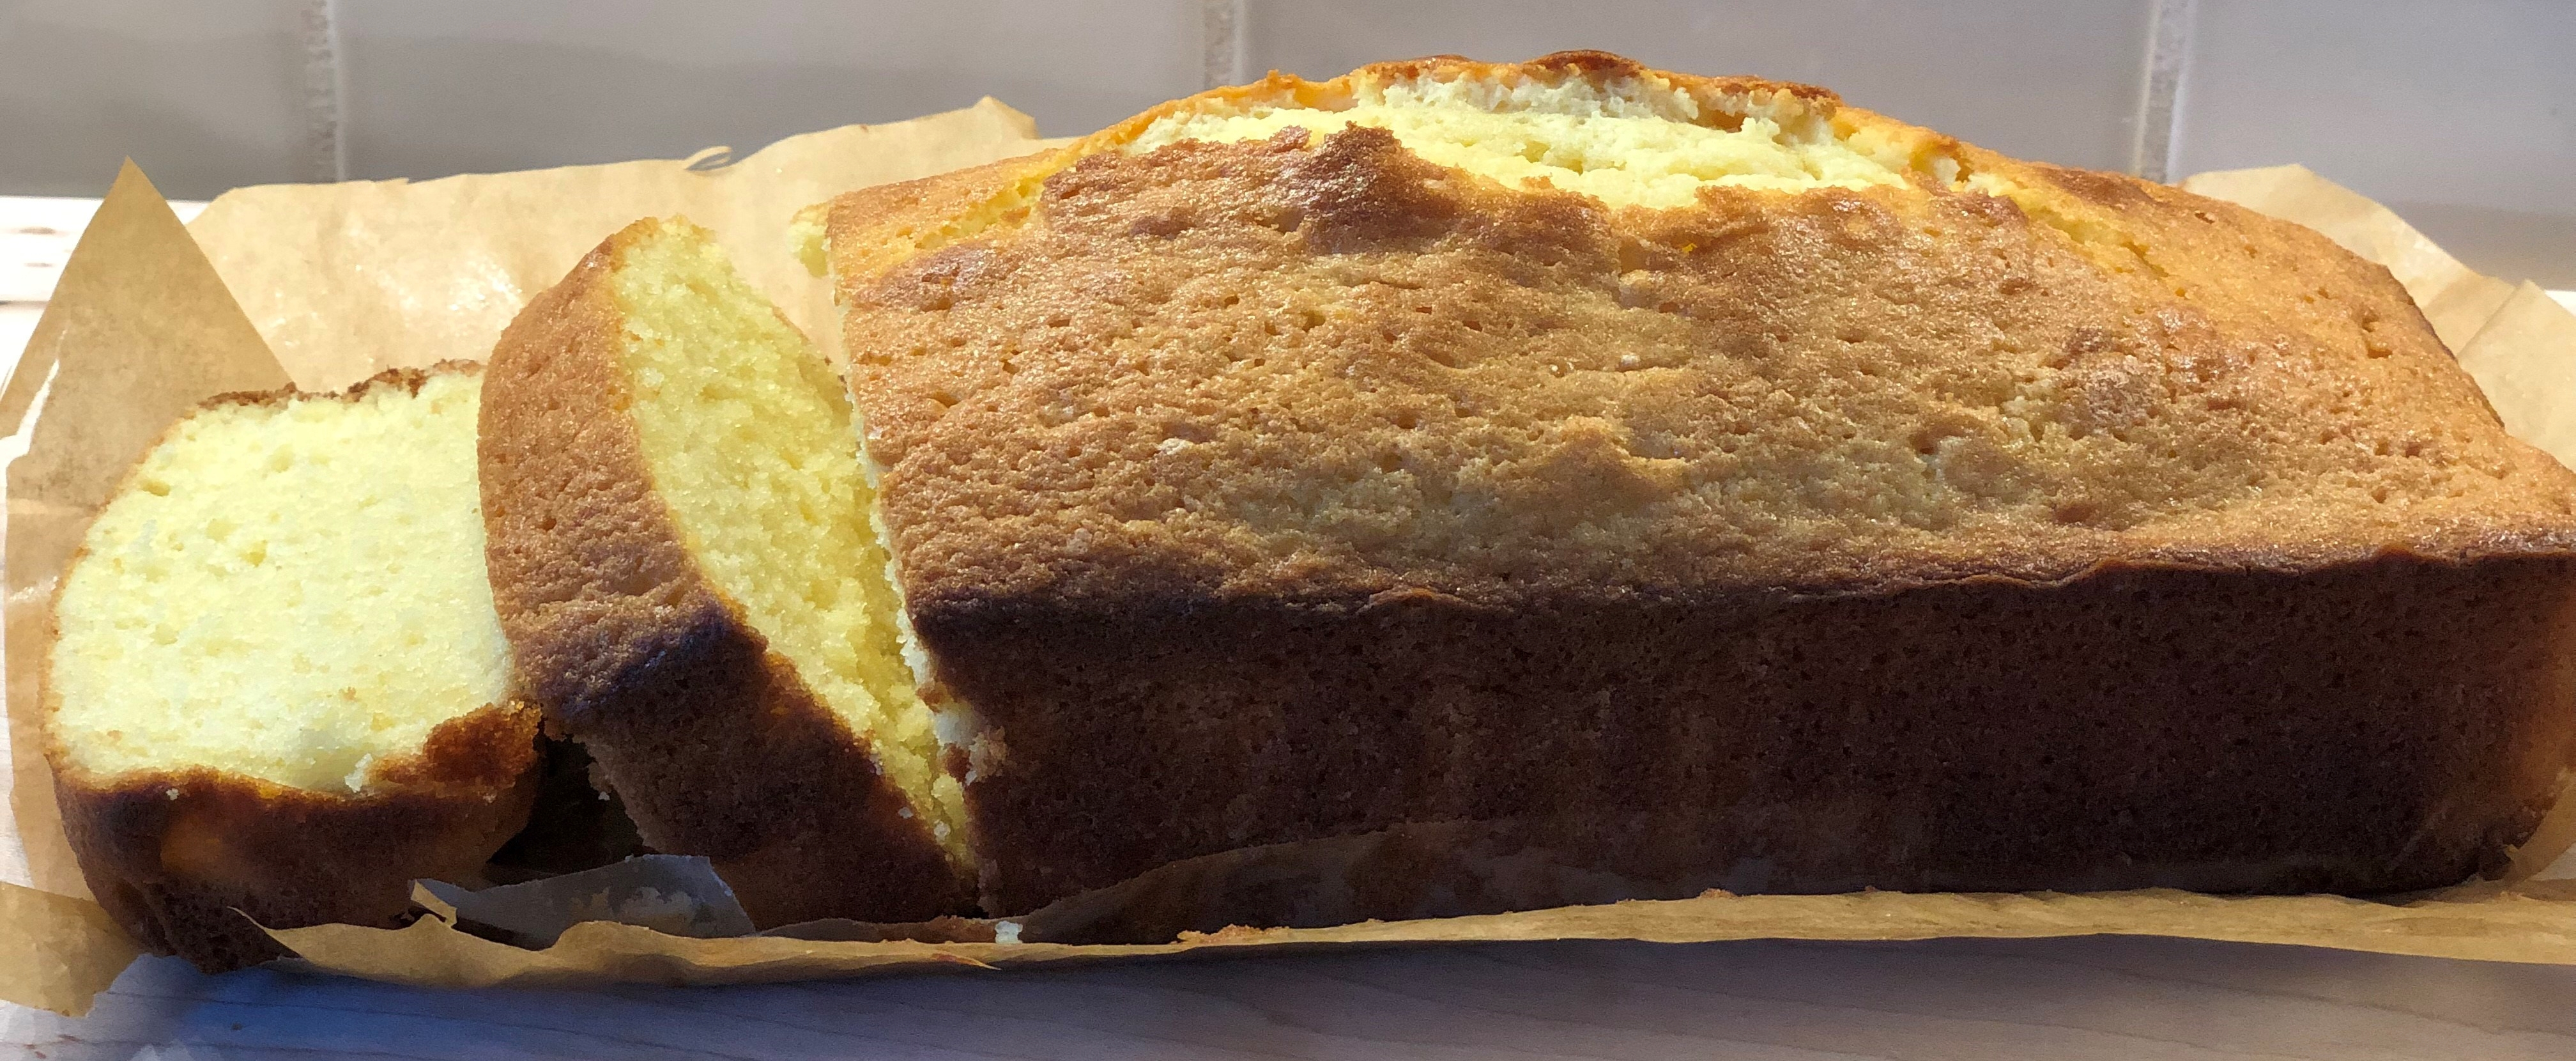 All butter pound cake from Sri Lanka